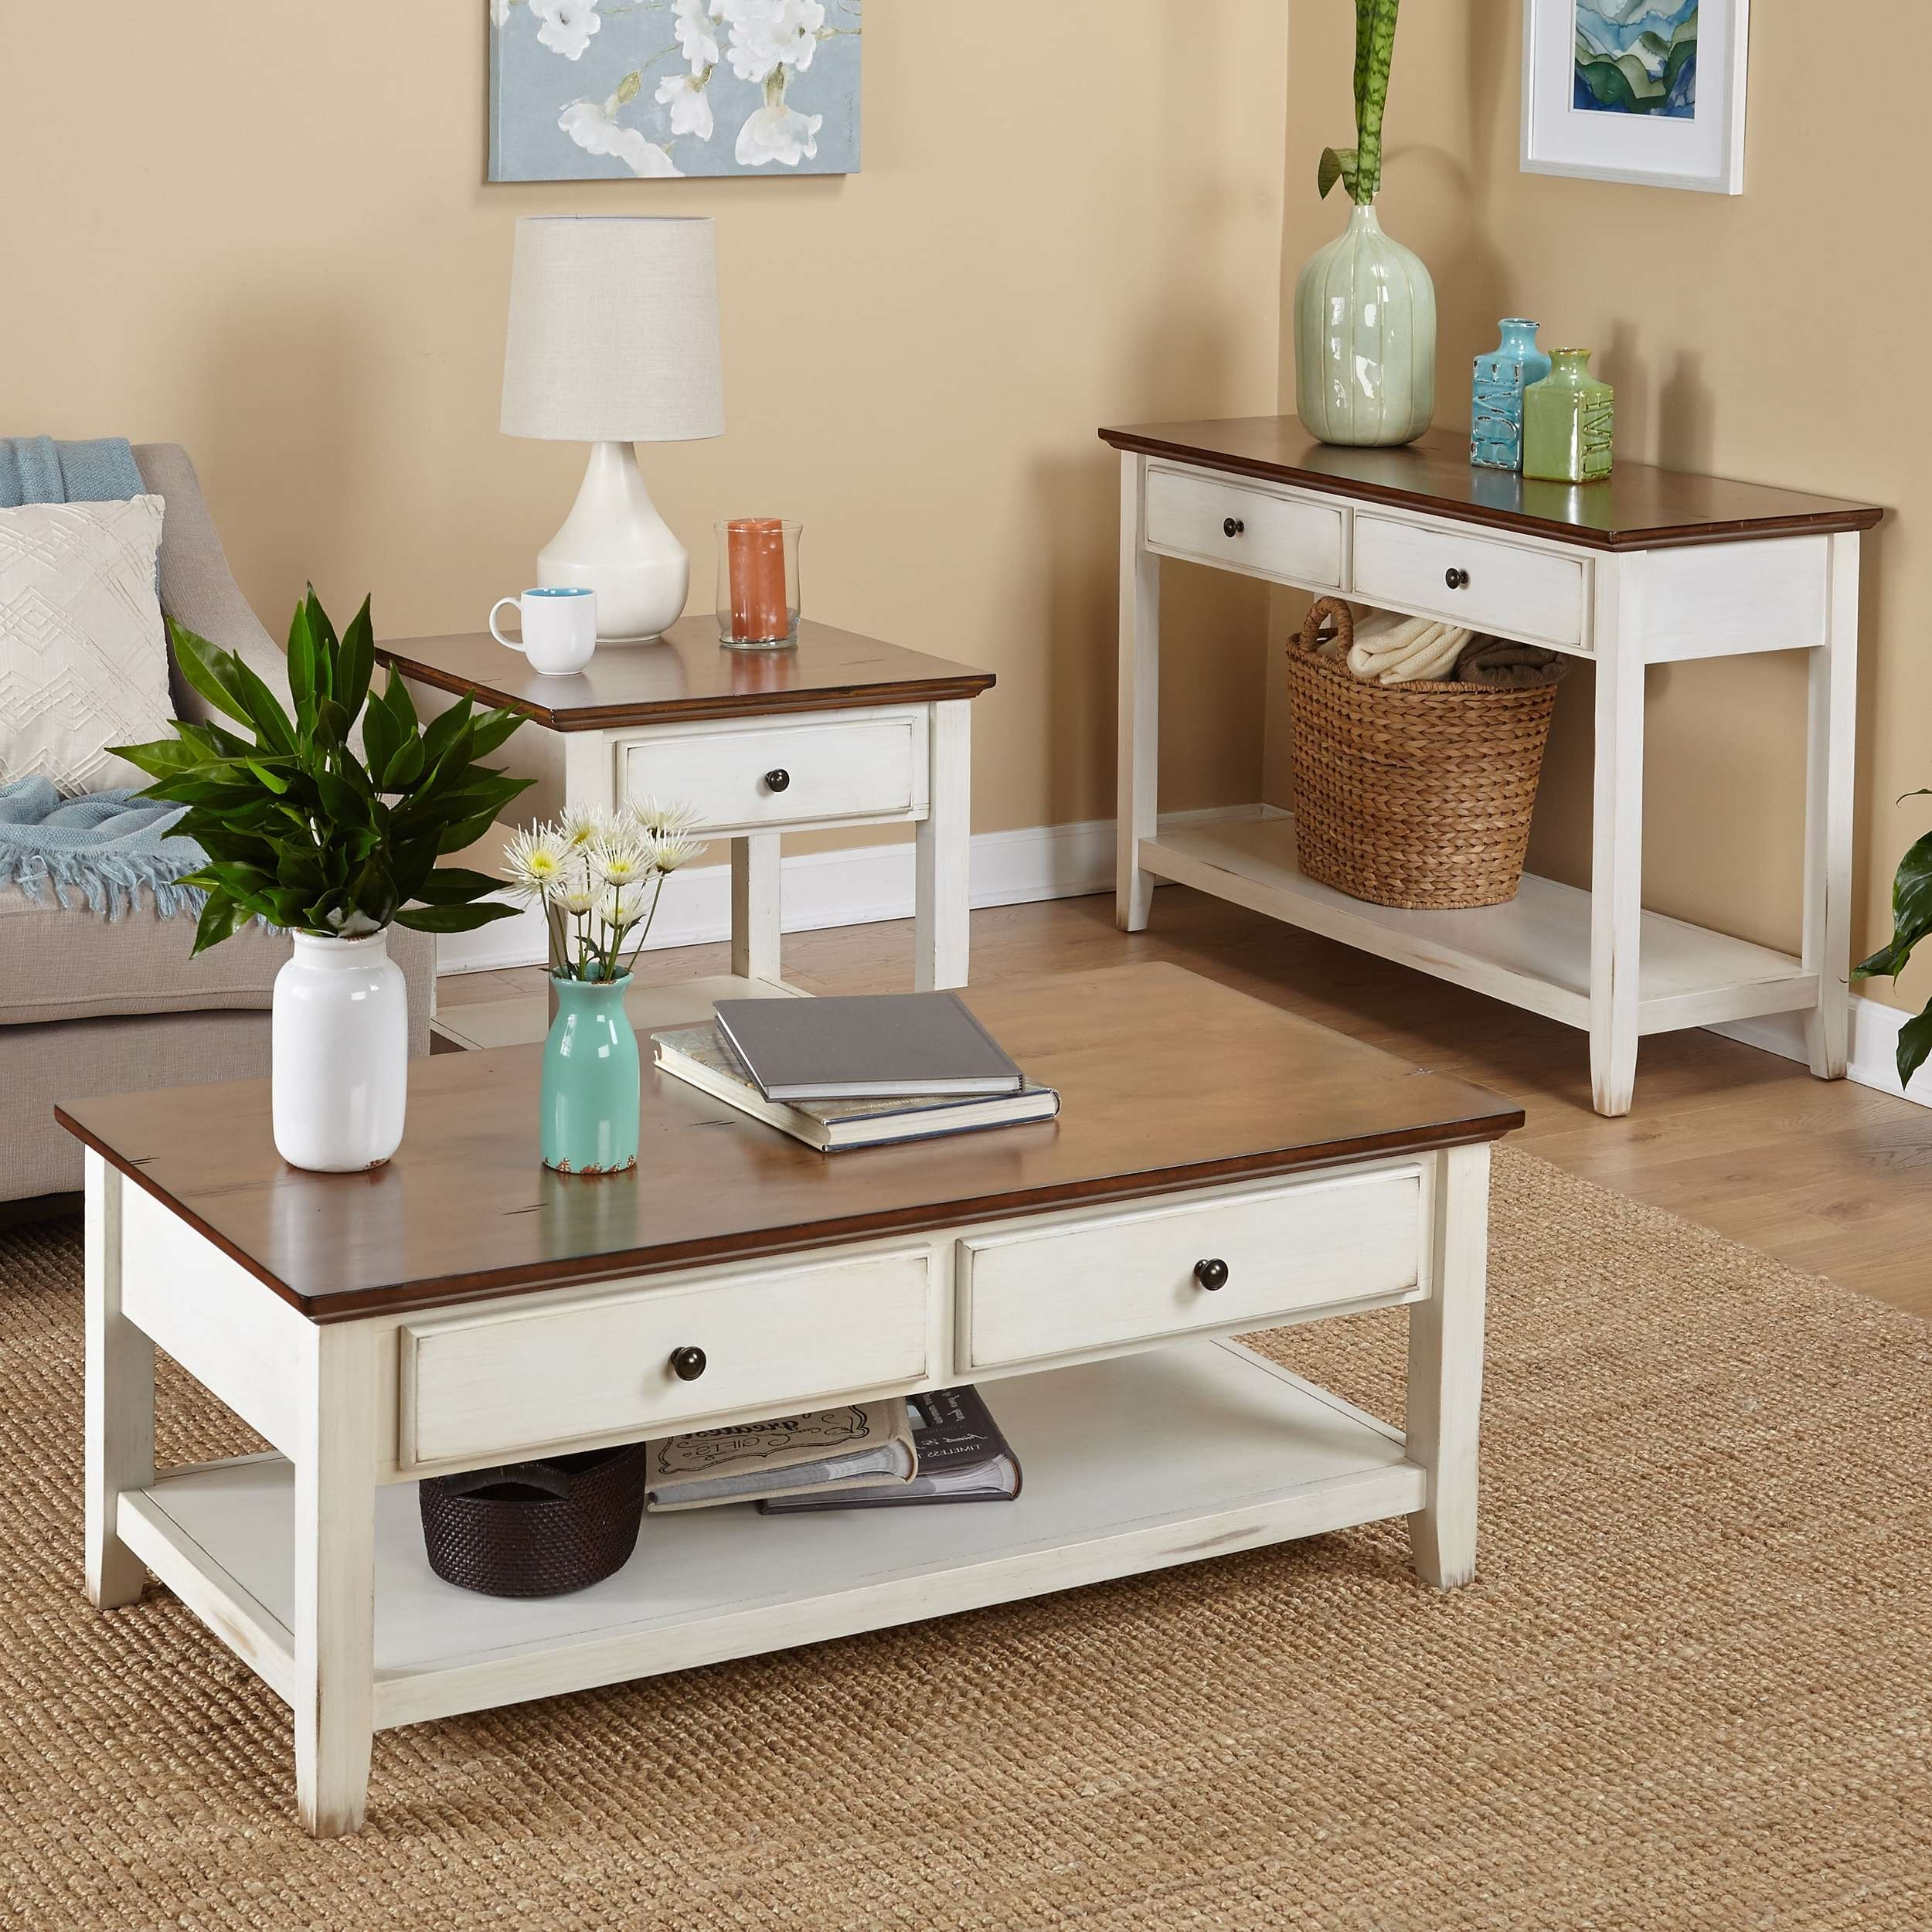 Simple Living Charleston Coffee Table – Free Shipping Today With Regard To Most Current Coffee Tables With Shelves (View 15 of 20)